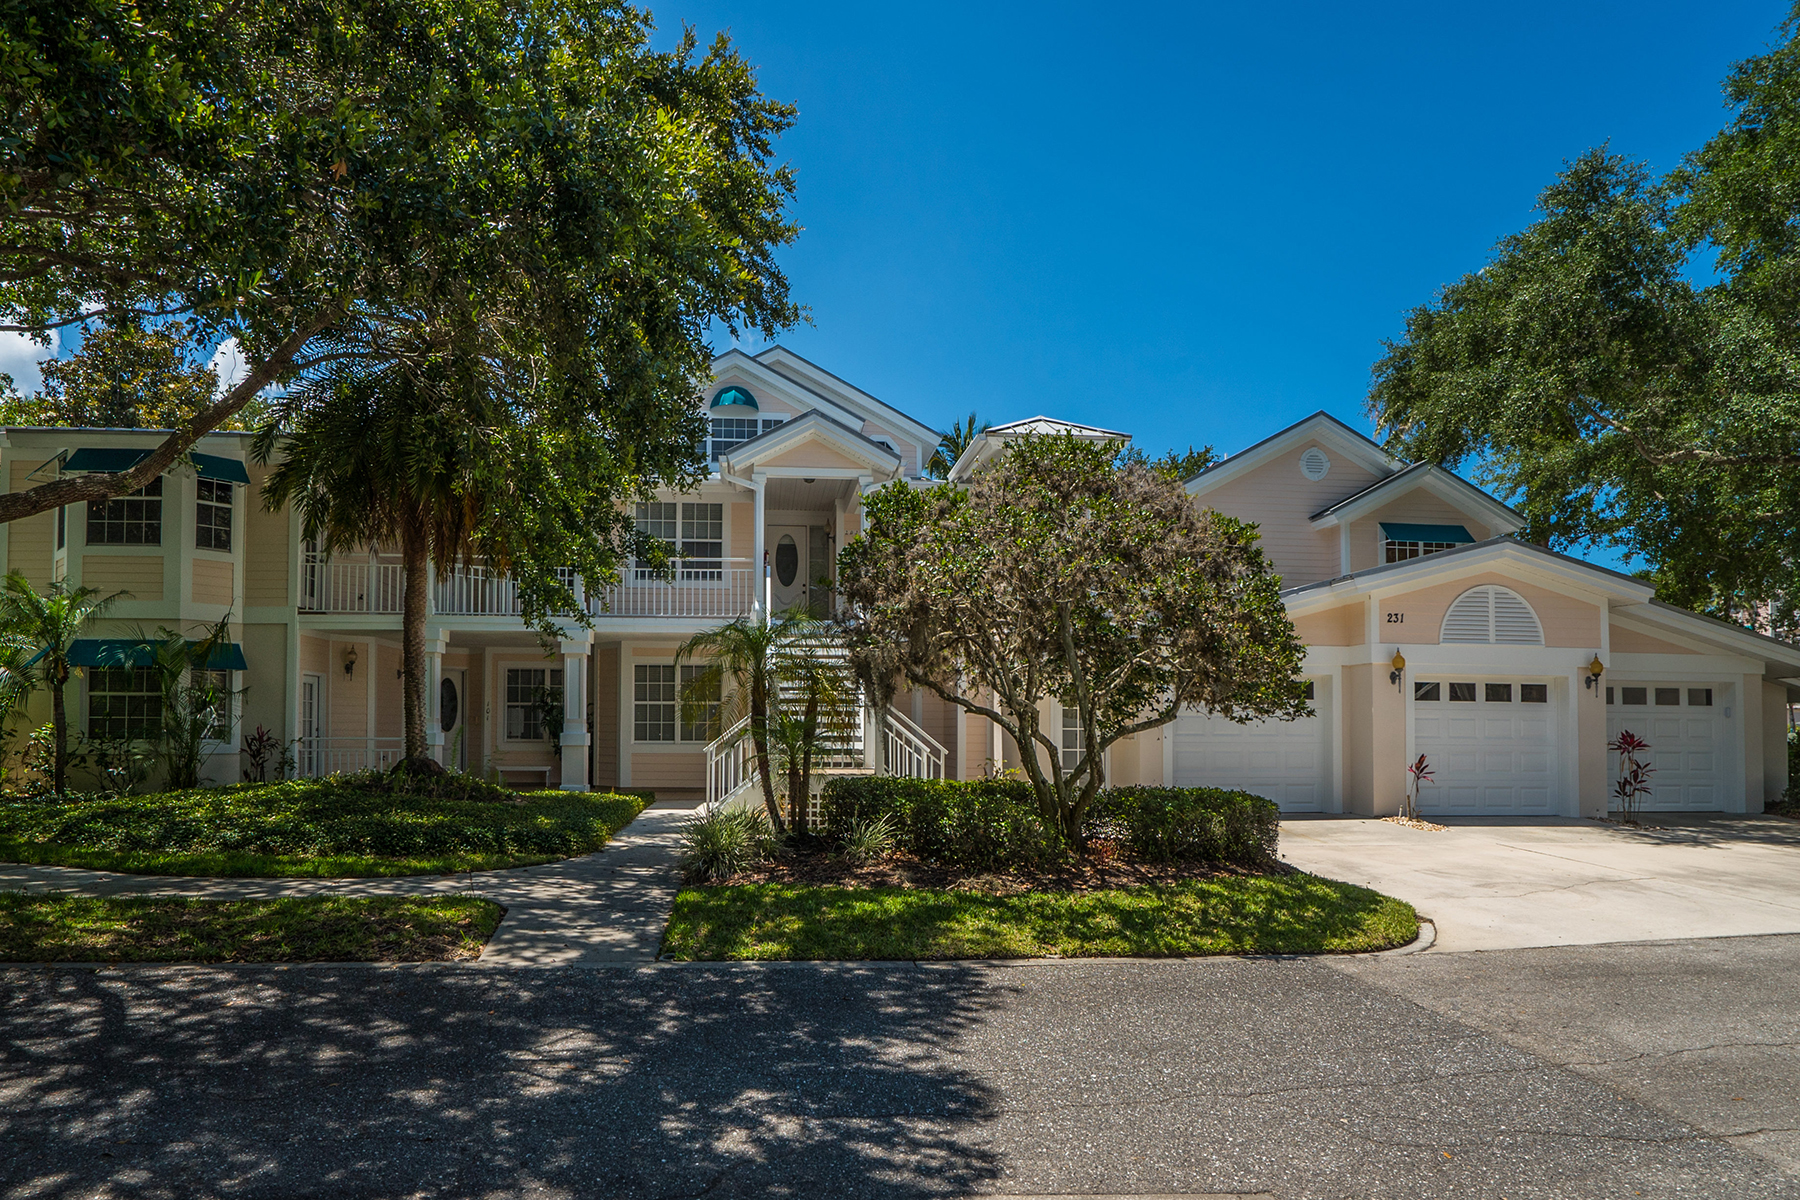 Condominium for Sale at OSPREY 231 N Hidden Bay Dr 201 Osprey, Florida, 34229 United States